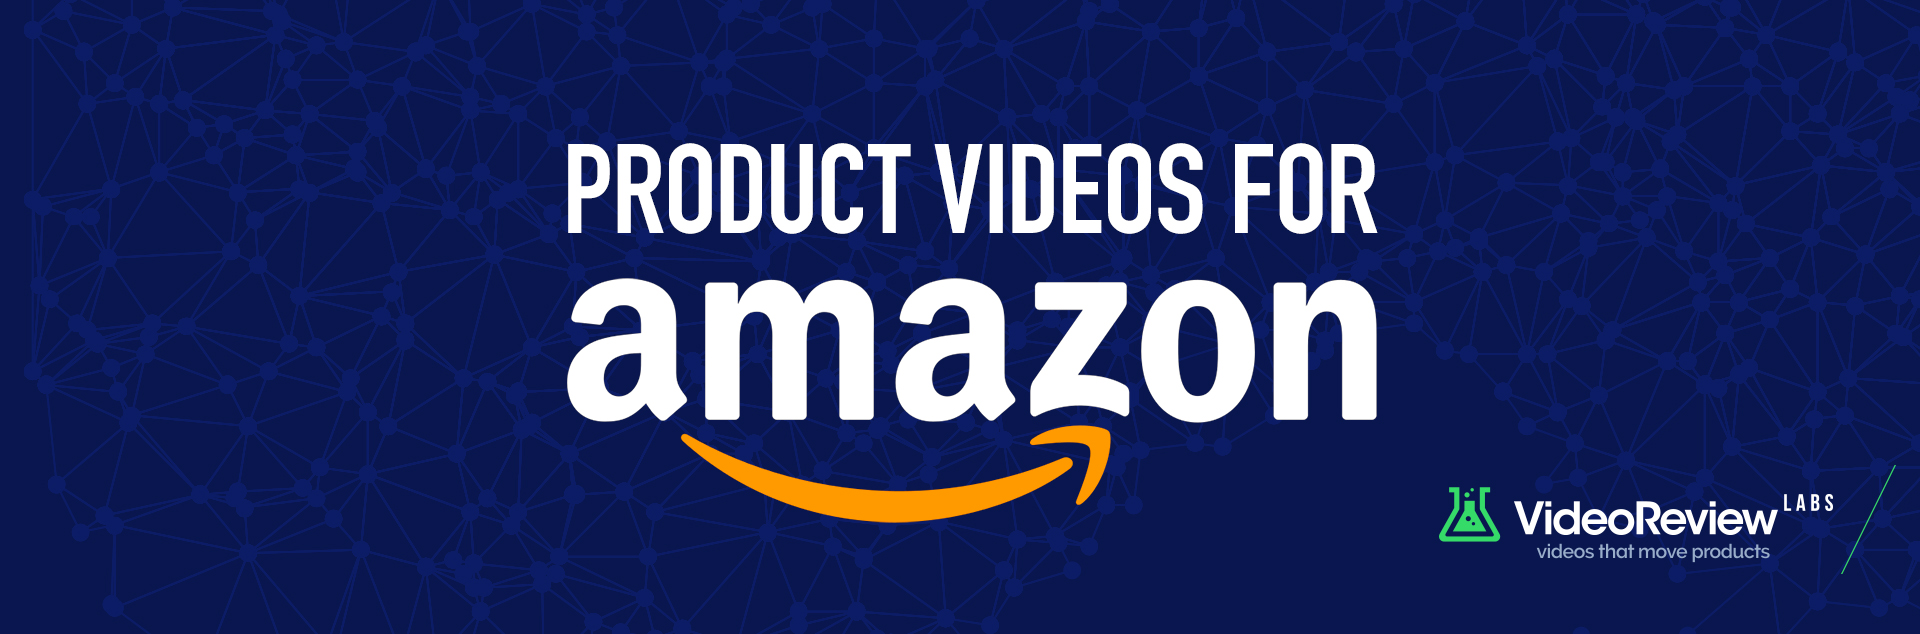 Amazon Product Videos & Amazon product video